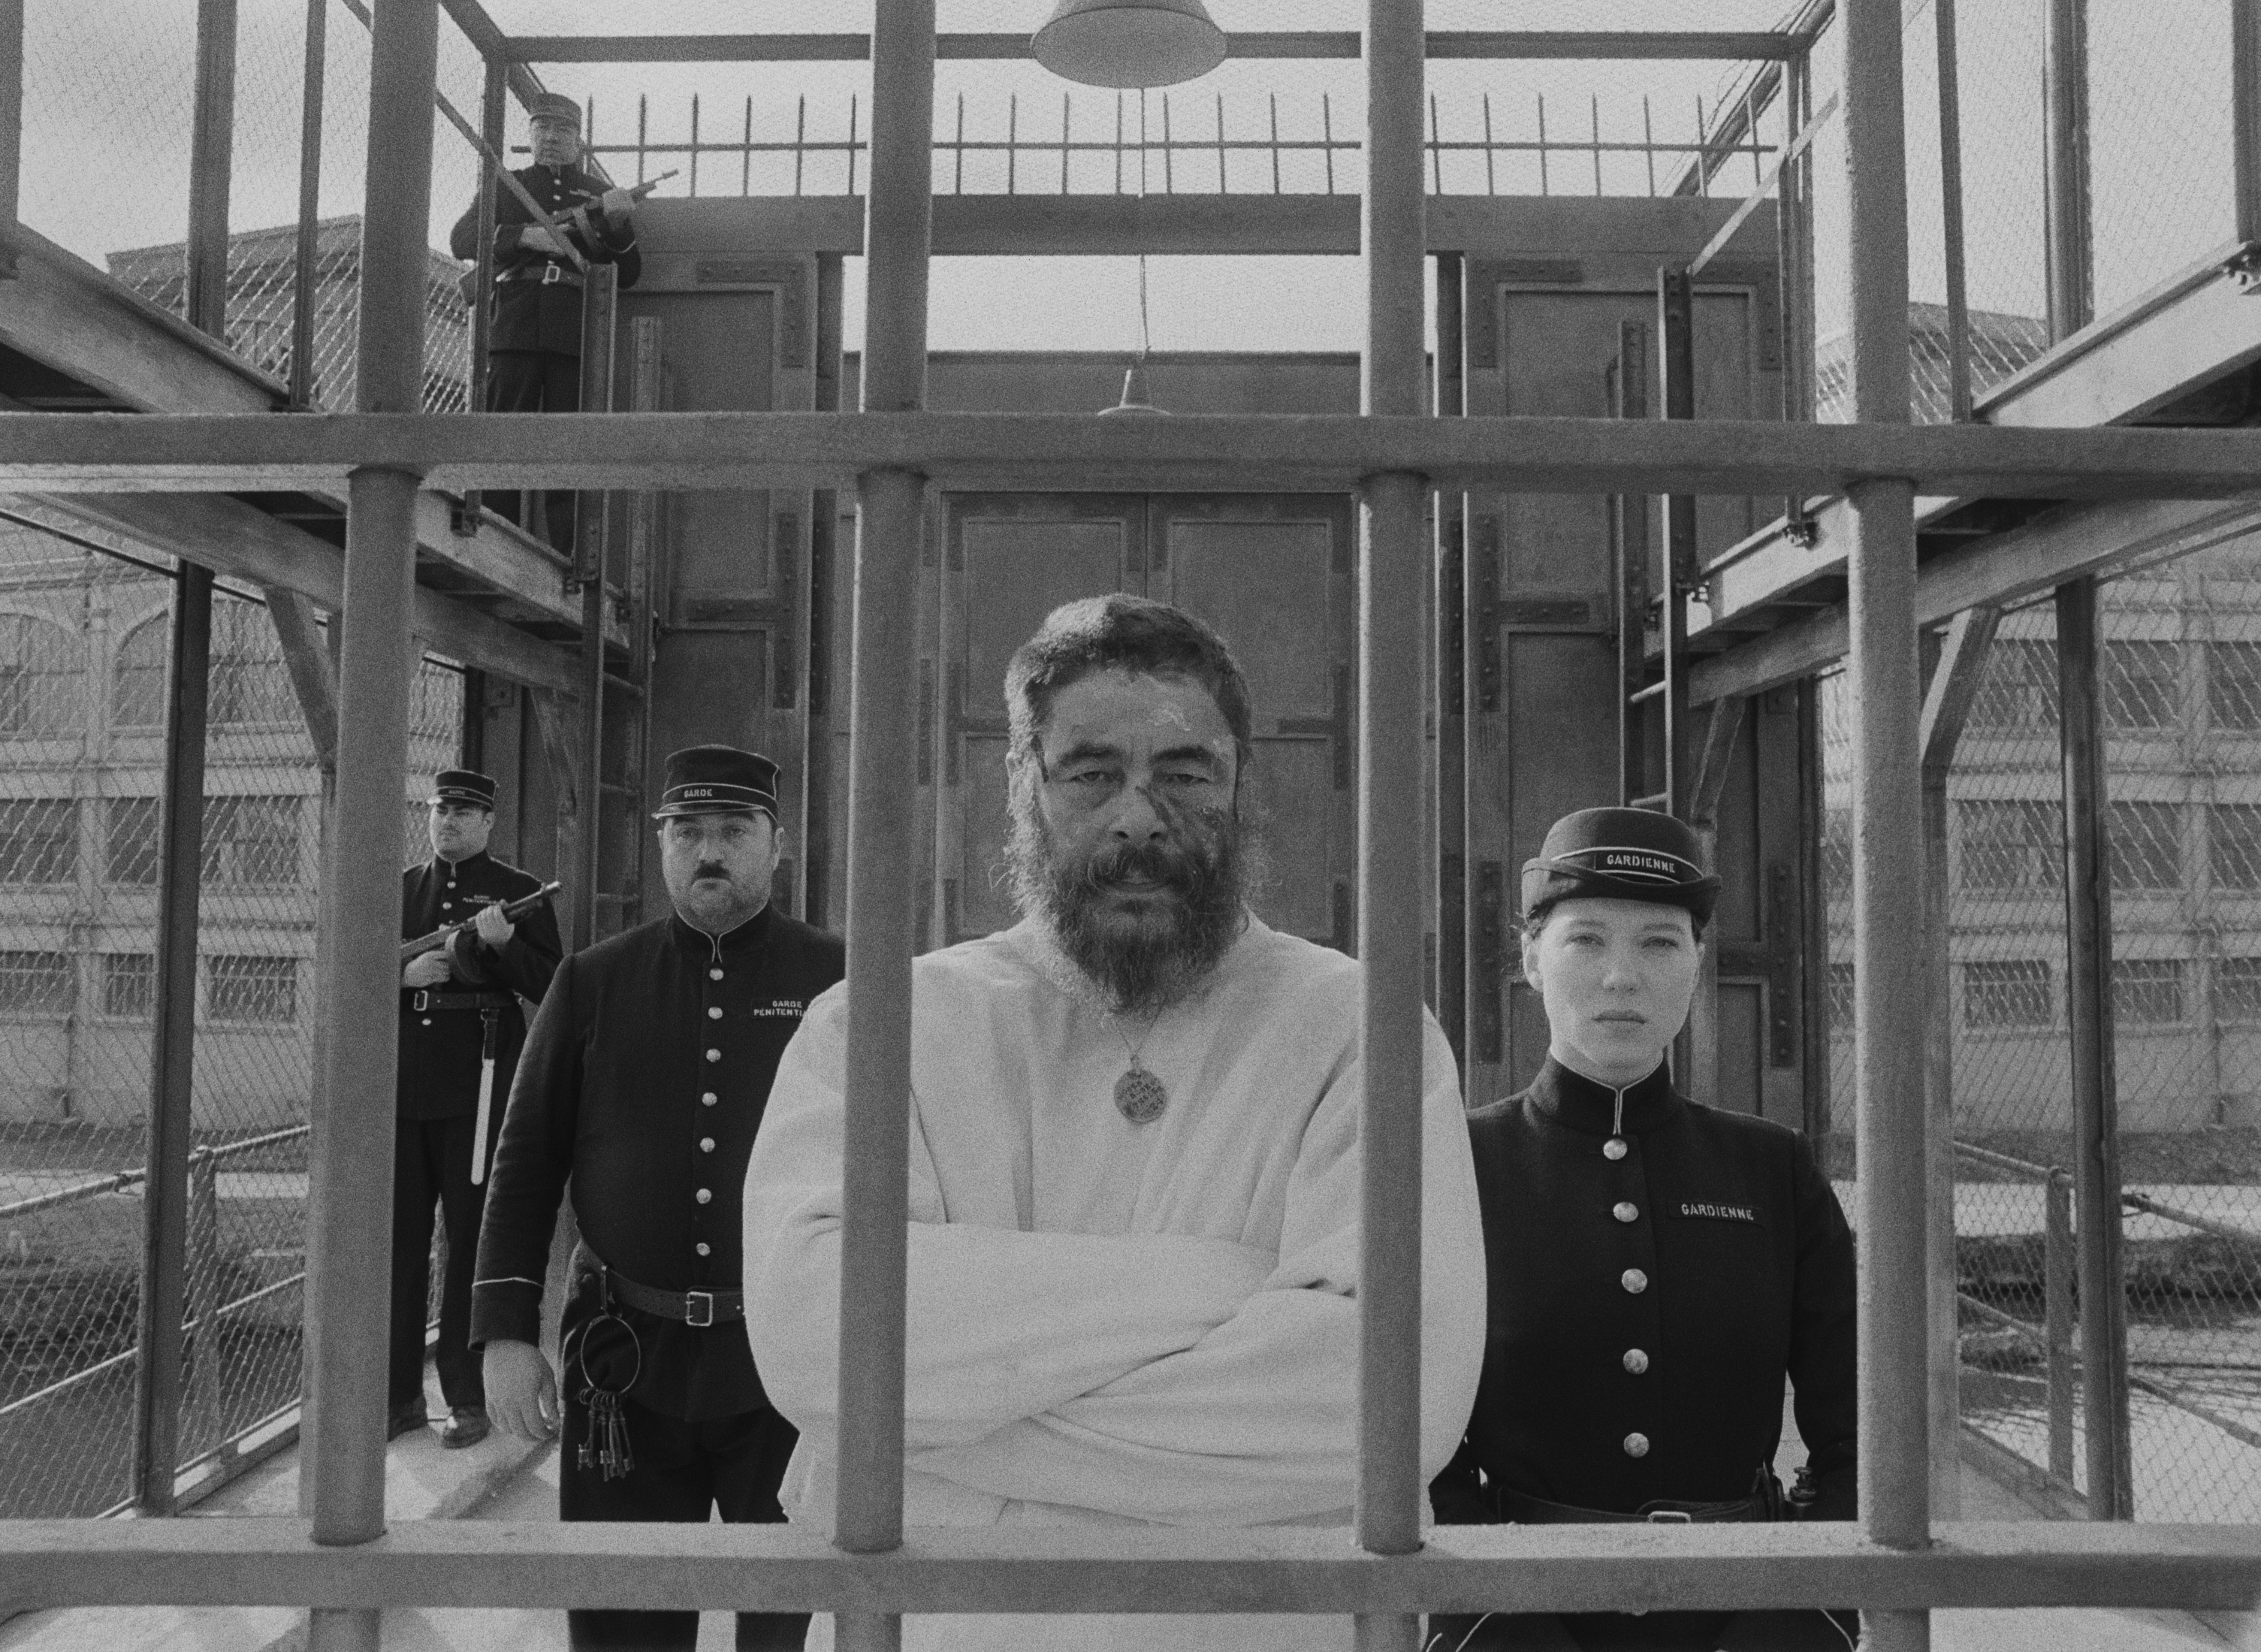 THE FRENCH DISPATCH.Benicio del Toro and Léa Seydoux Photo Courtesy of Searchlight Pictures. © 2021 20th Century Studios All Rights Reserved